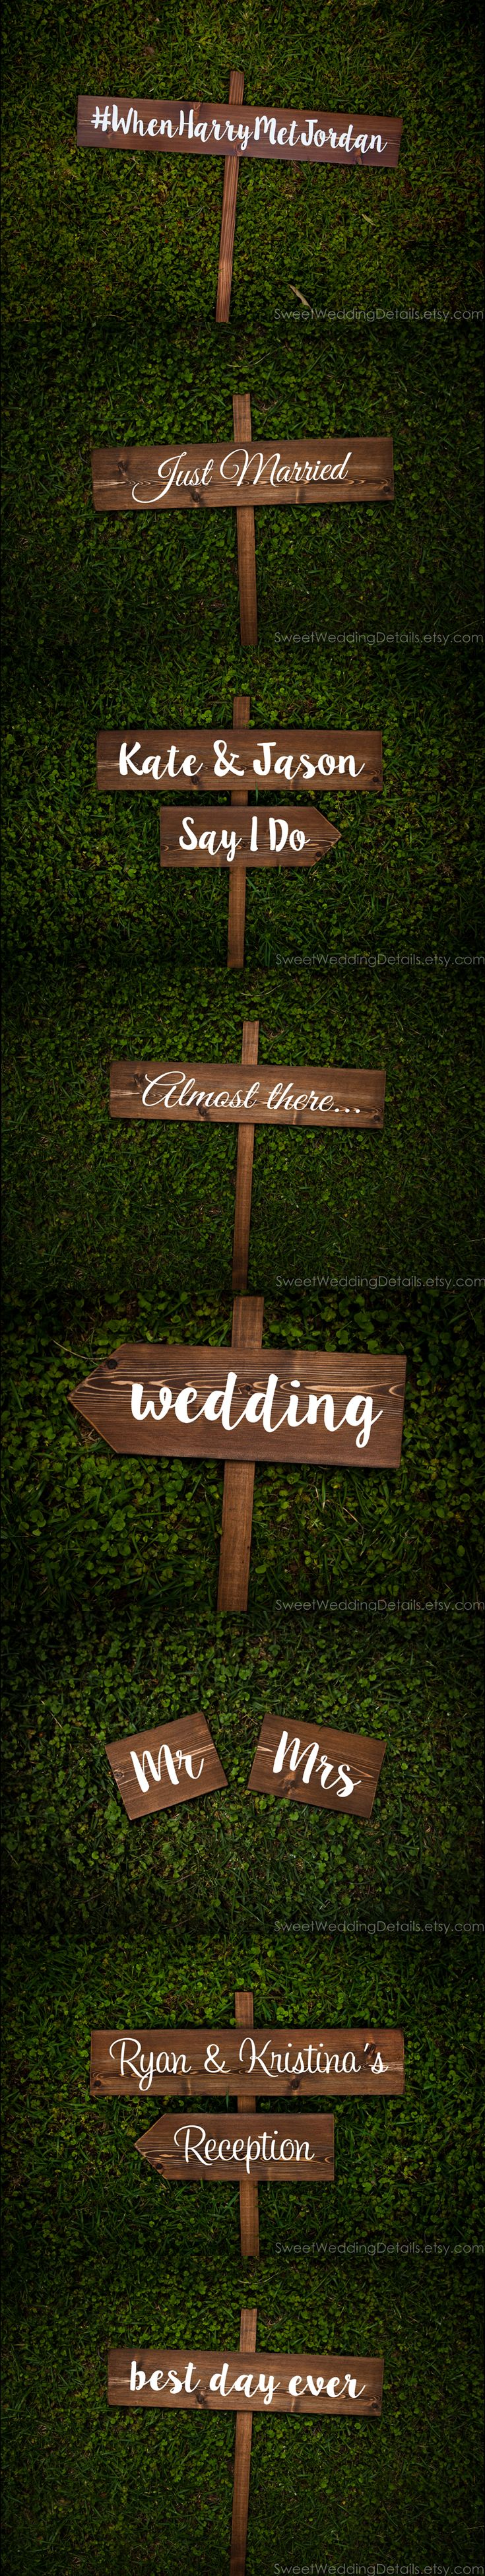 Rustic Wedding Signs and Decor for your special day that are sUre to charm (and sweetly direct) your guests throughout your day! And who couldn't use a cute hashtag wedding sign?!